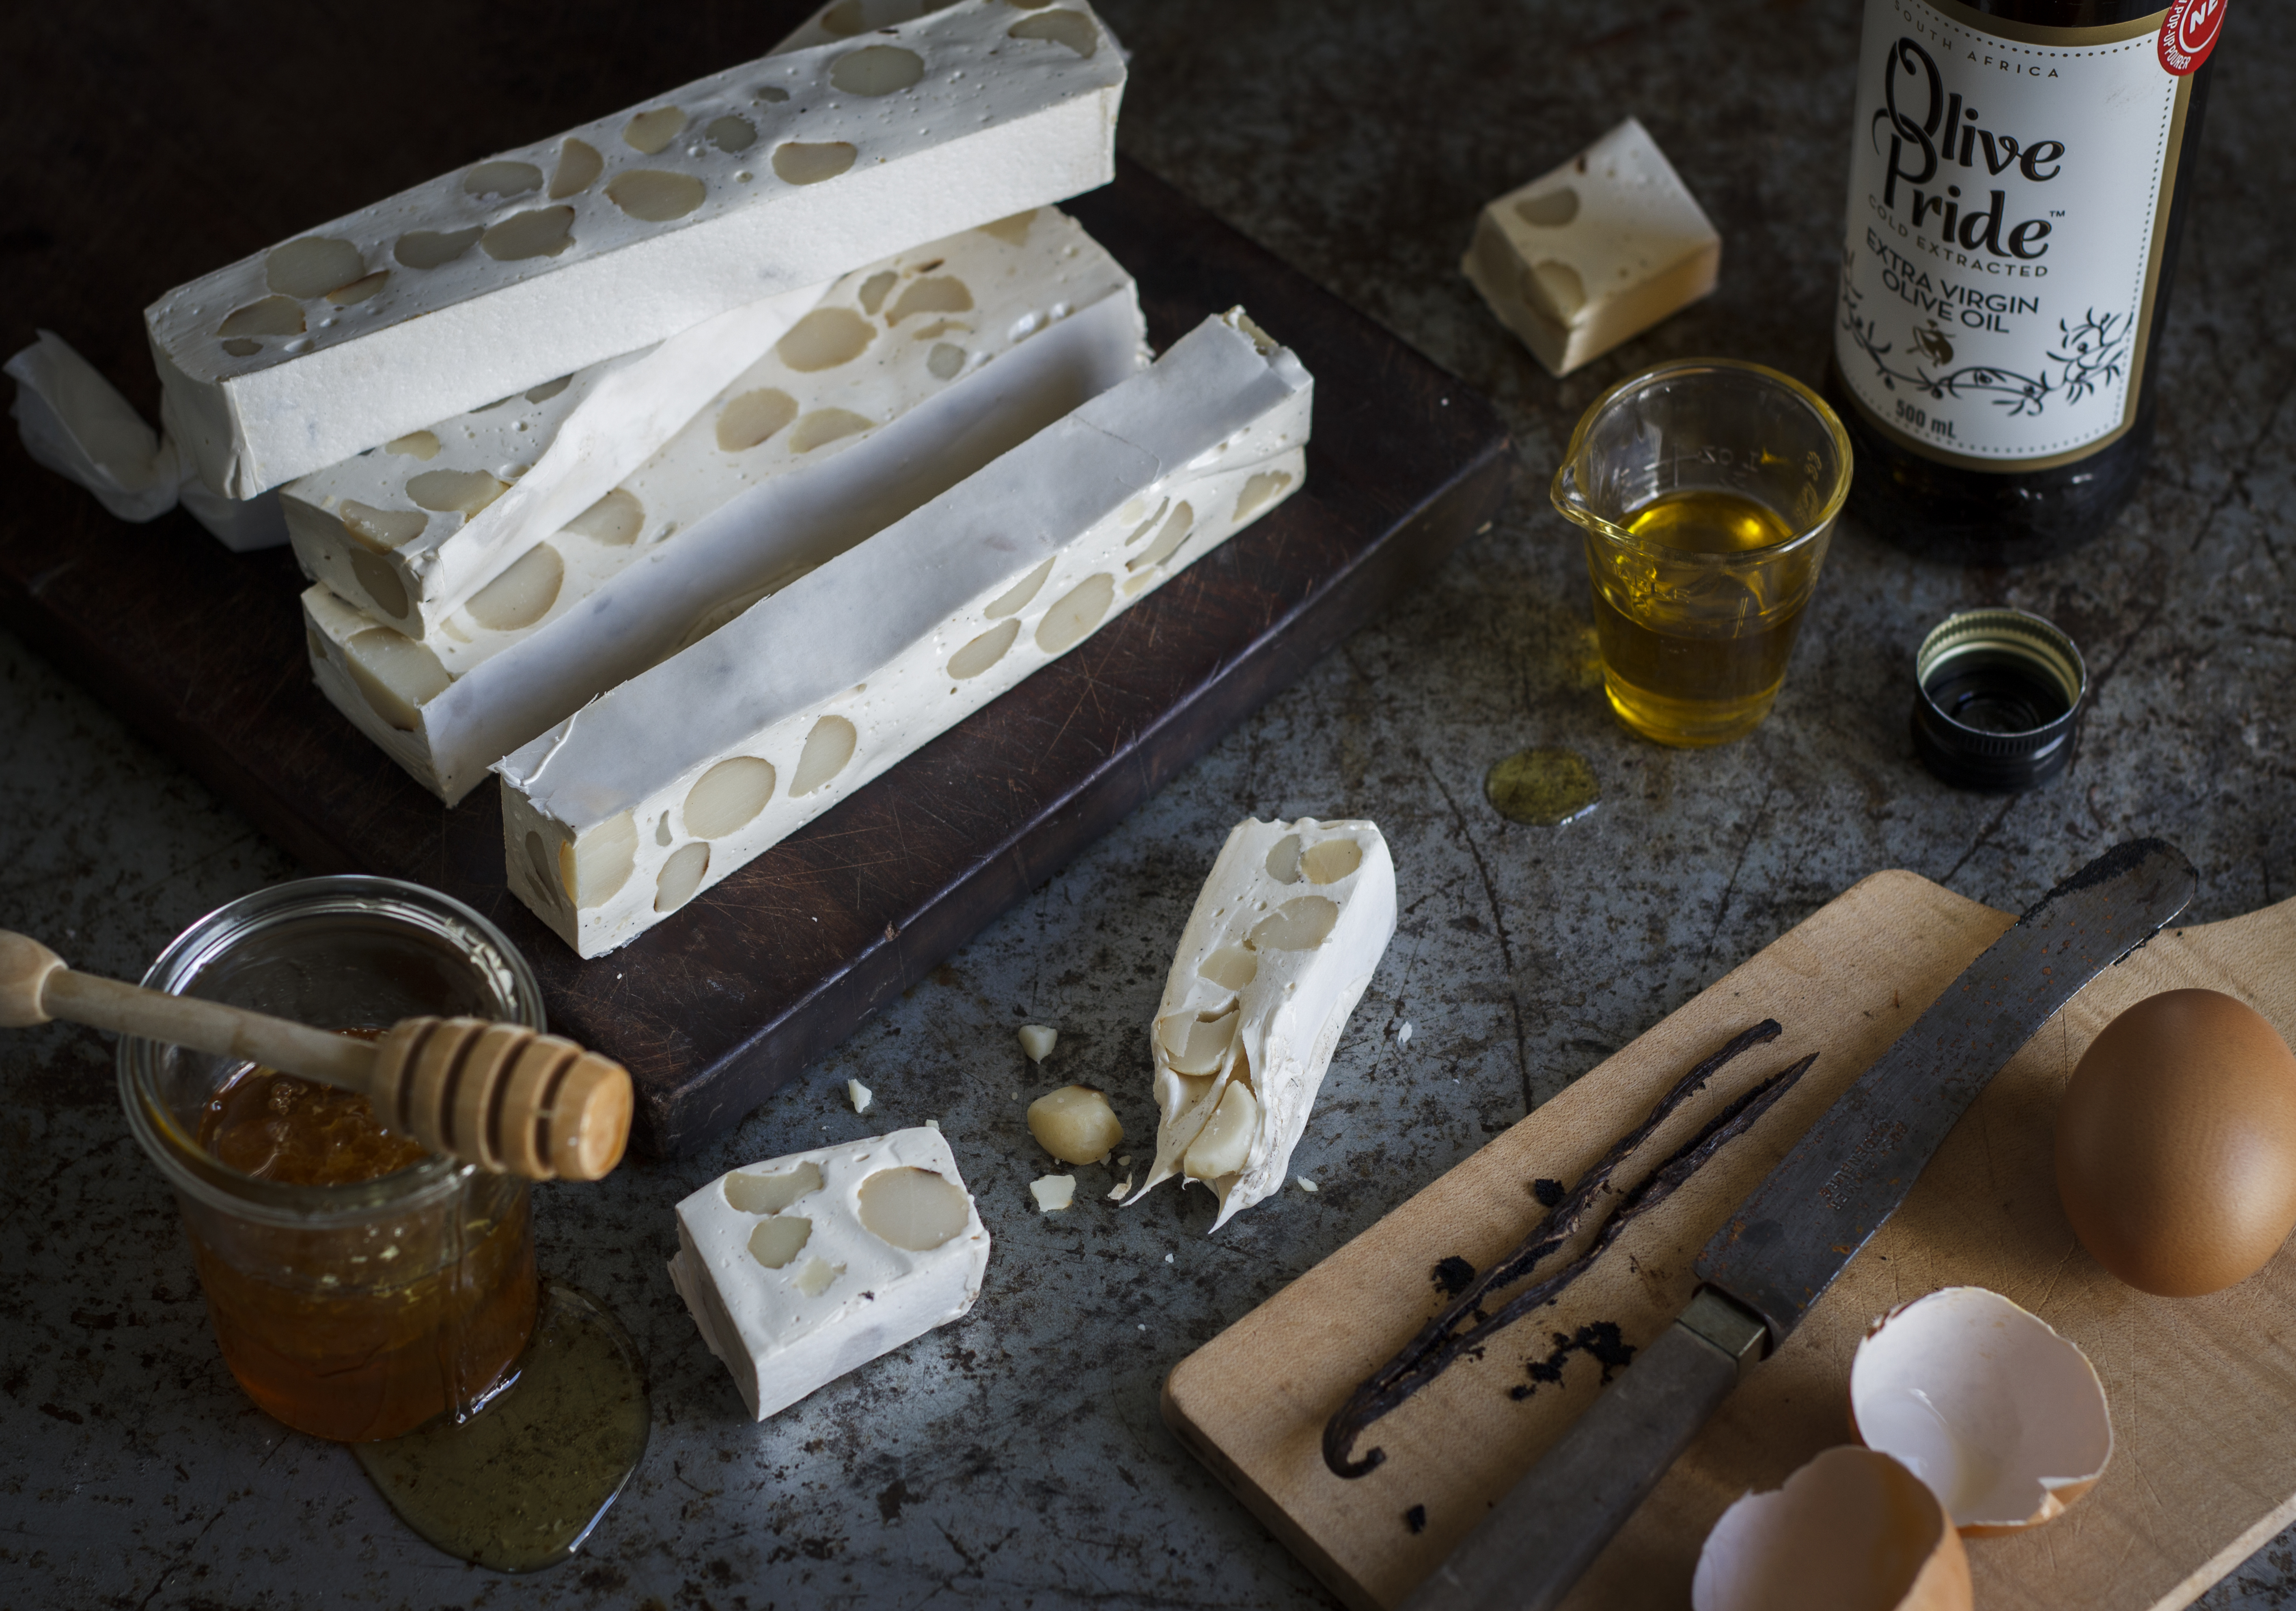 Homemade Vanilla and Olive Oil Nougat with Macadamia Nuts